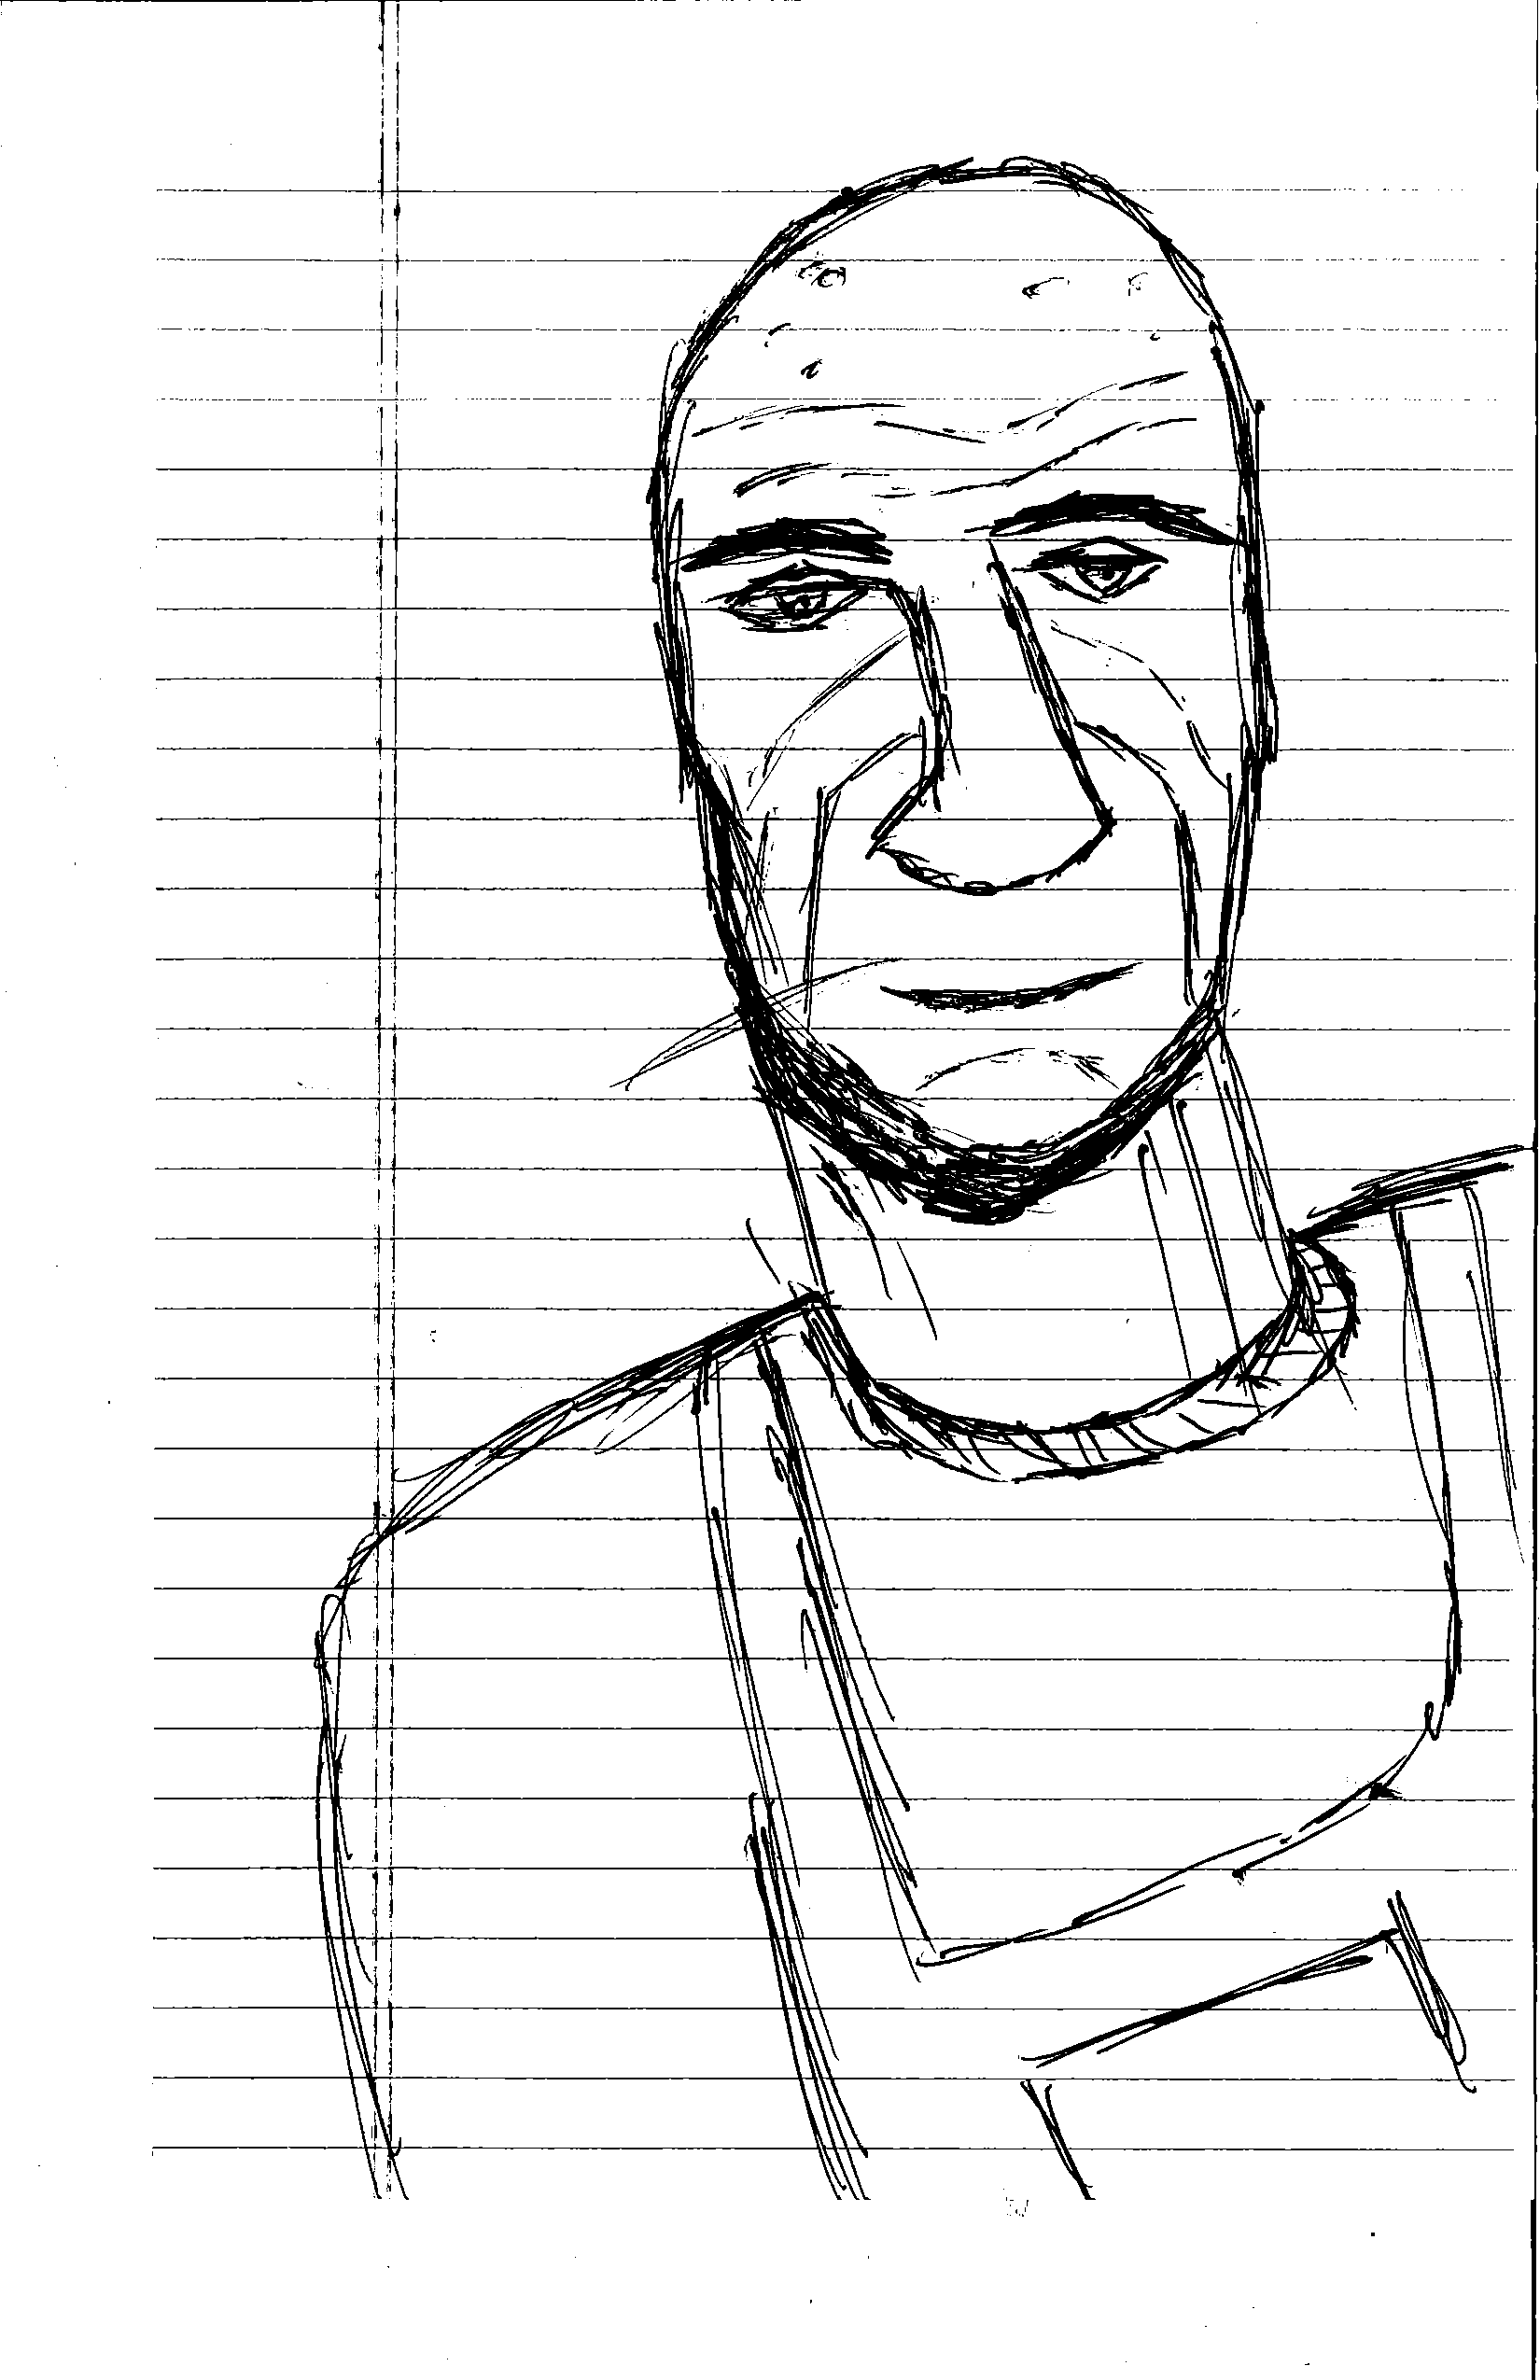 2-12-16 1.png